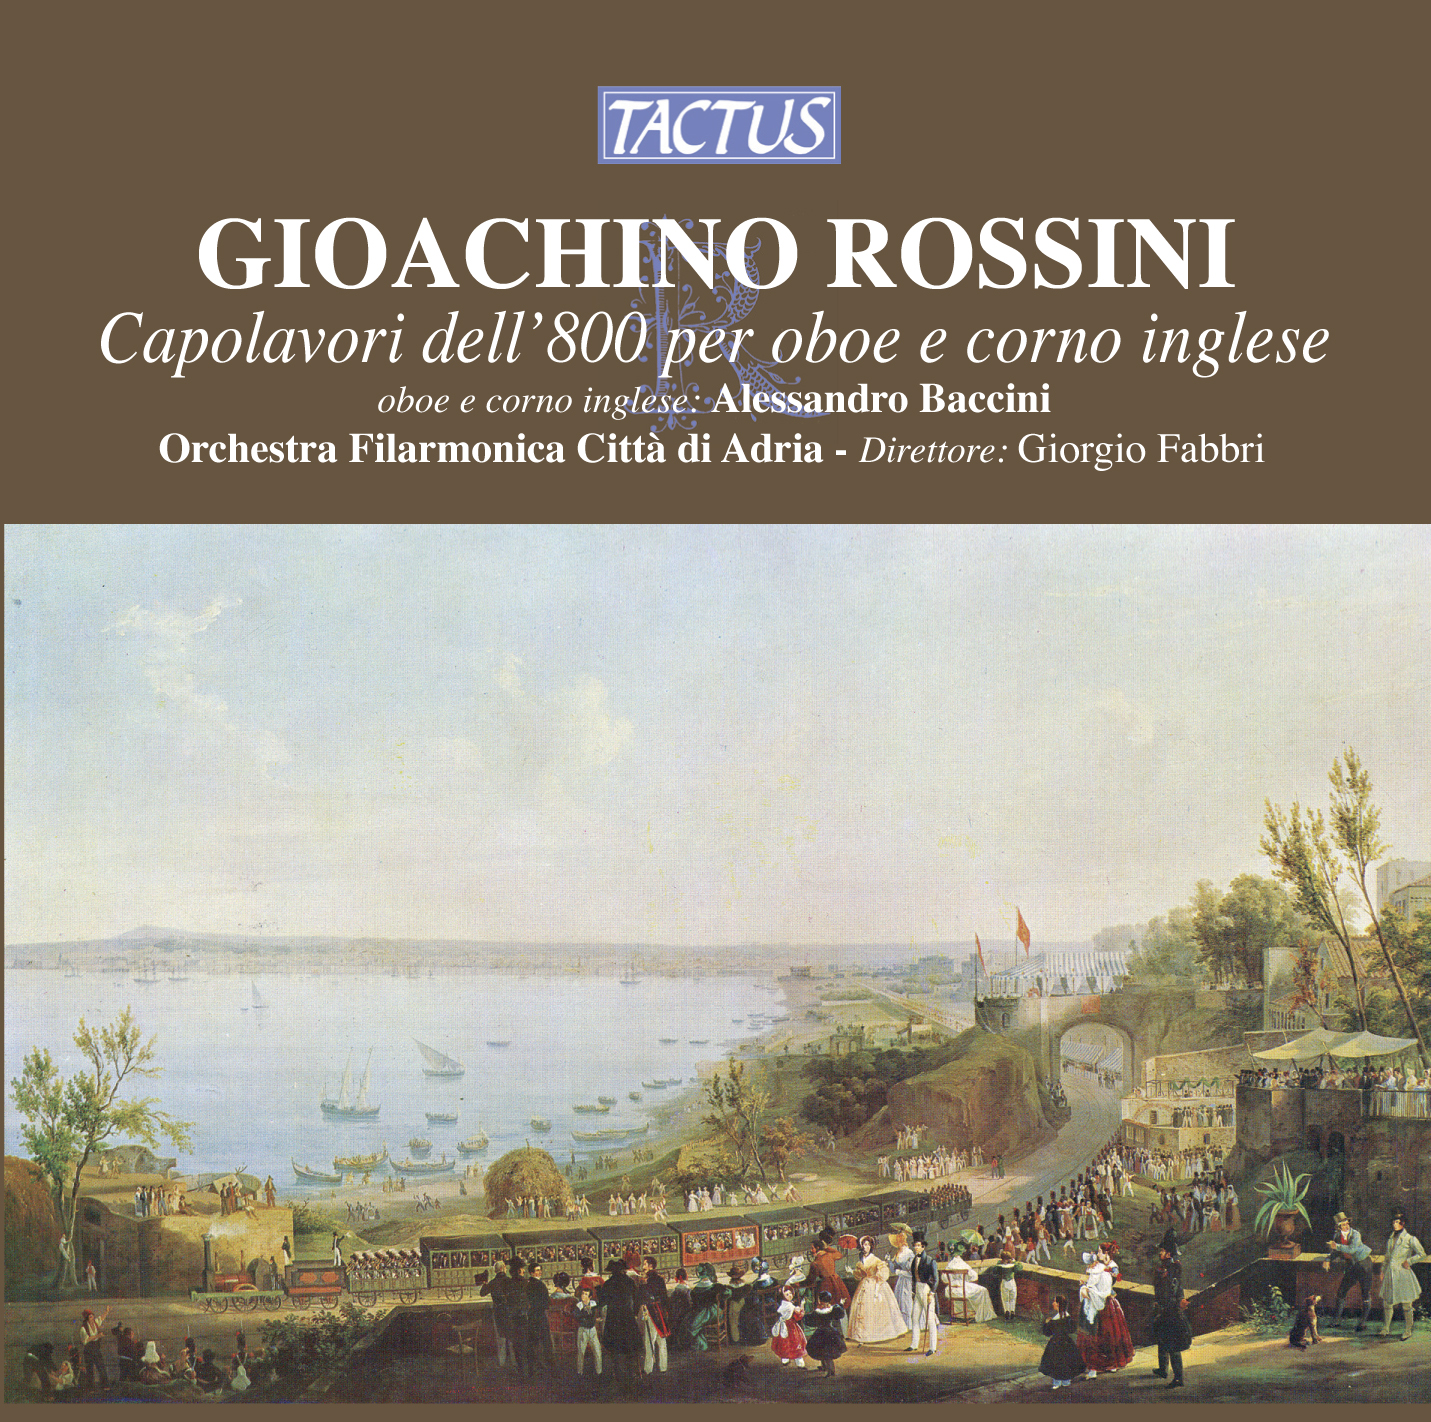 Variations in E Major on Non più mesta from Rossini's La Cenerentola (arr. for oboe and string orchestra), Variations in E Major on Non piu mesta from Rossini's La Cenerentola (arr. for oboe and string orchestra)